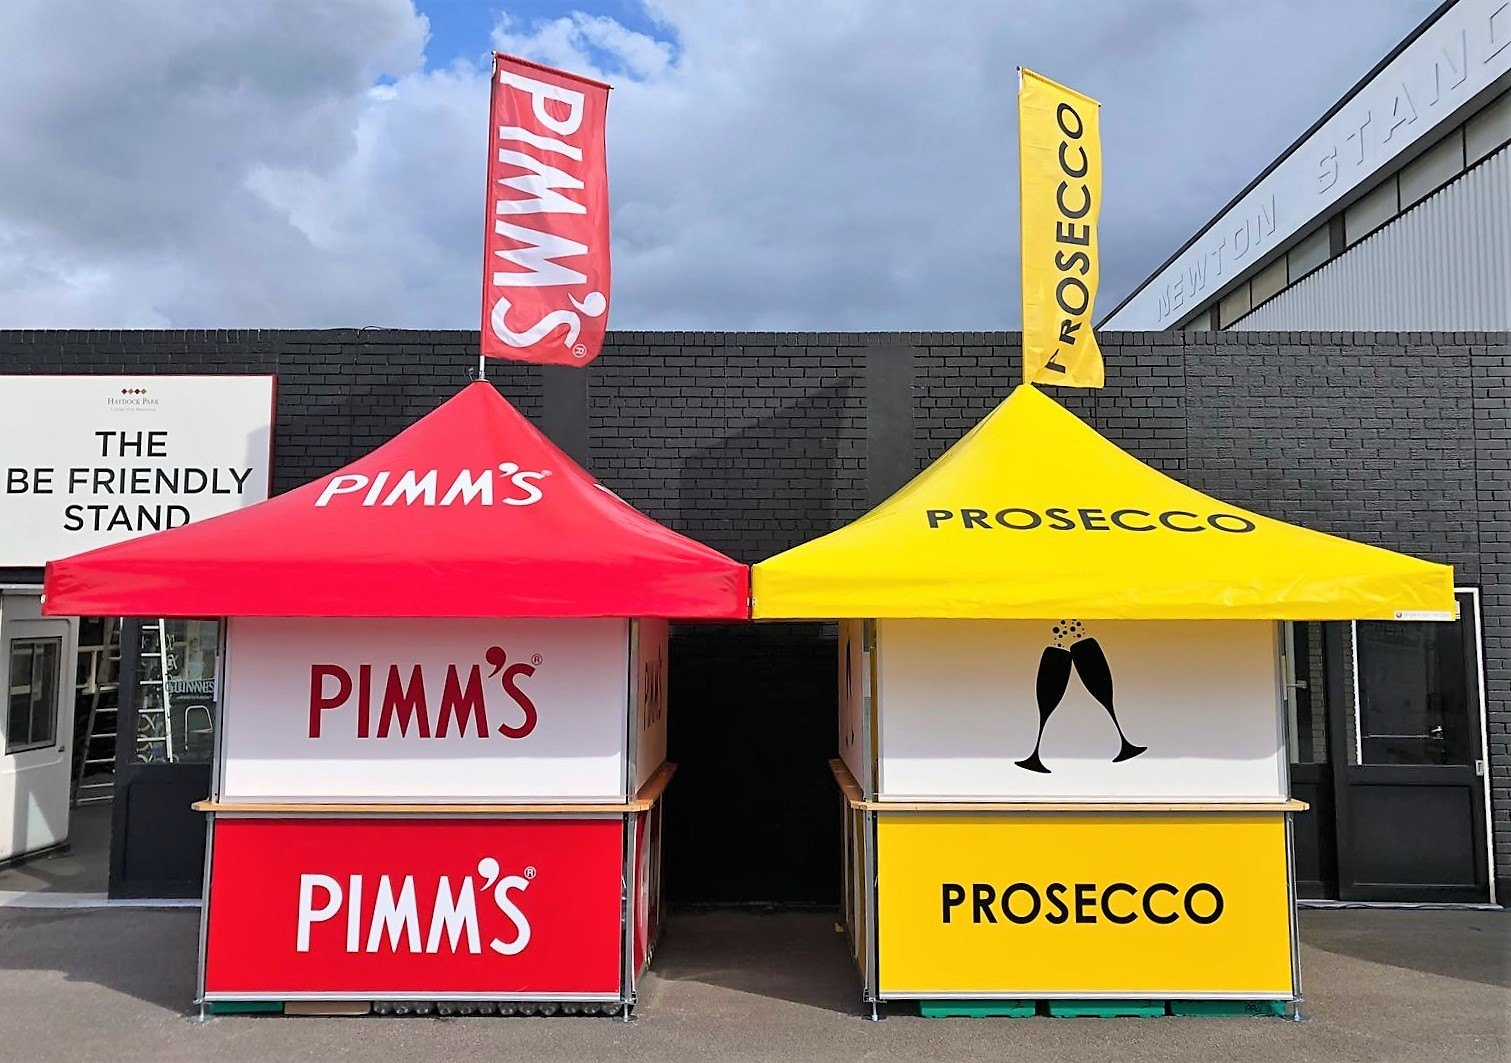 <p>Event, Mobile & Stadia Bars – Tents & Marquees – Square Pavilion</p> <p> </p> <p>Outdoor Event Bars – Pimm's & Prosecco.</p> <p> </p> <p>Ideally suited for serving premium drinks brands as outdoor event bars at sporting venues, high-end party events etc.</p> <p> </p> <p>Square Pavilions are small enough to work in small spaces, but big enough to make your brand look its best and stand out in the crowd.  Includes Accessories – night panels and roof flags</p>